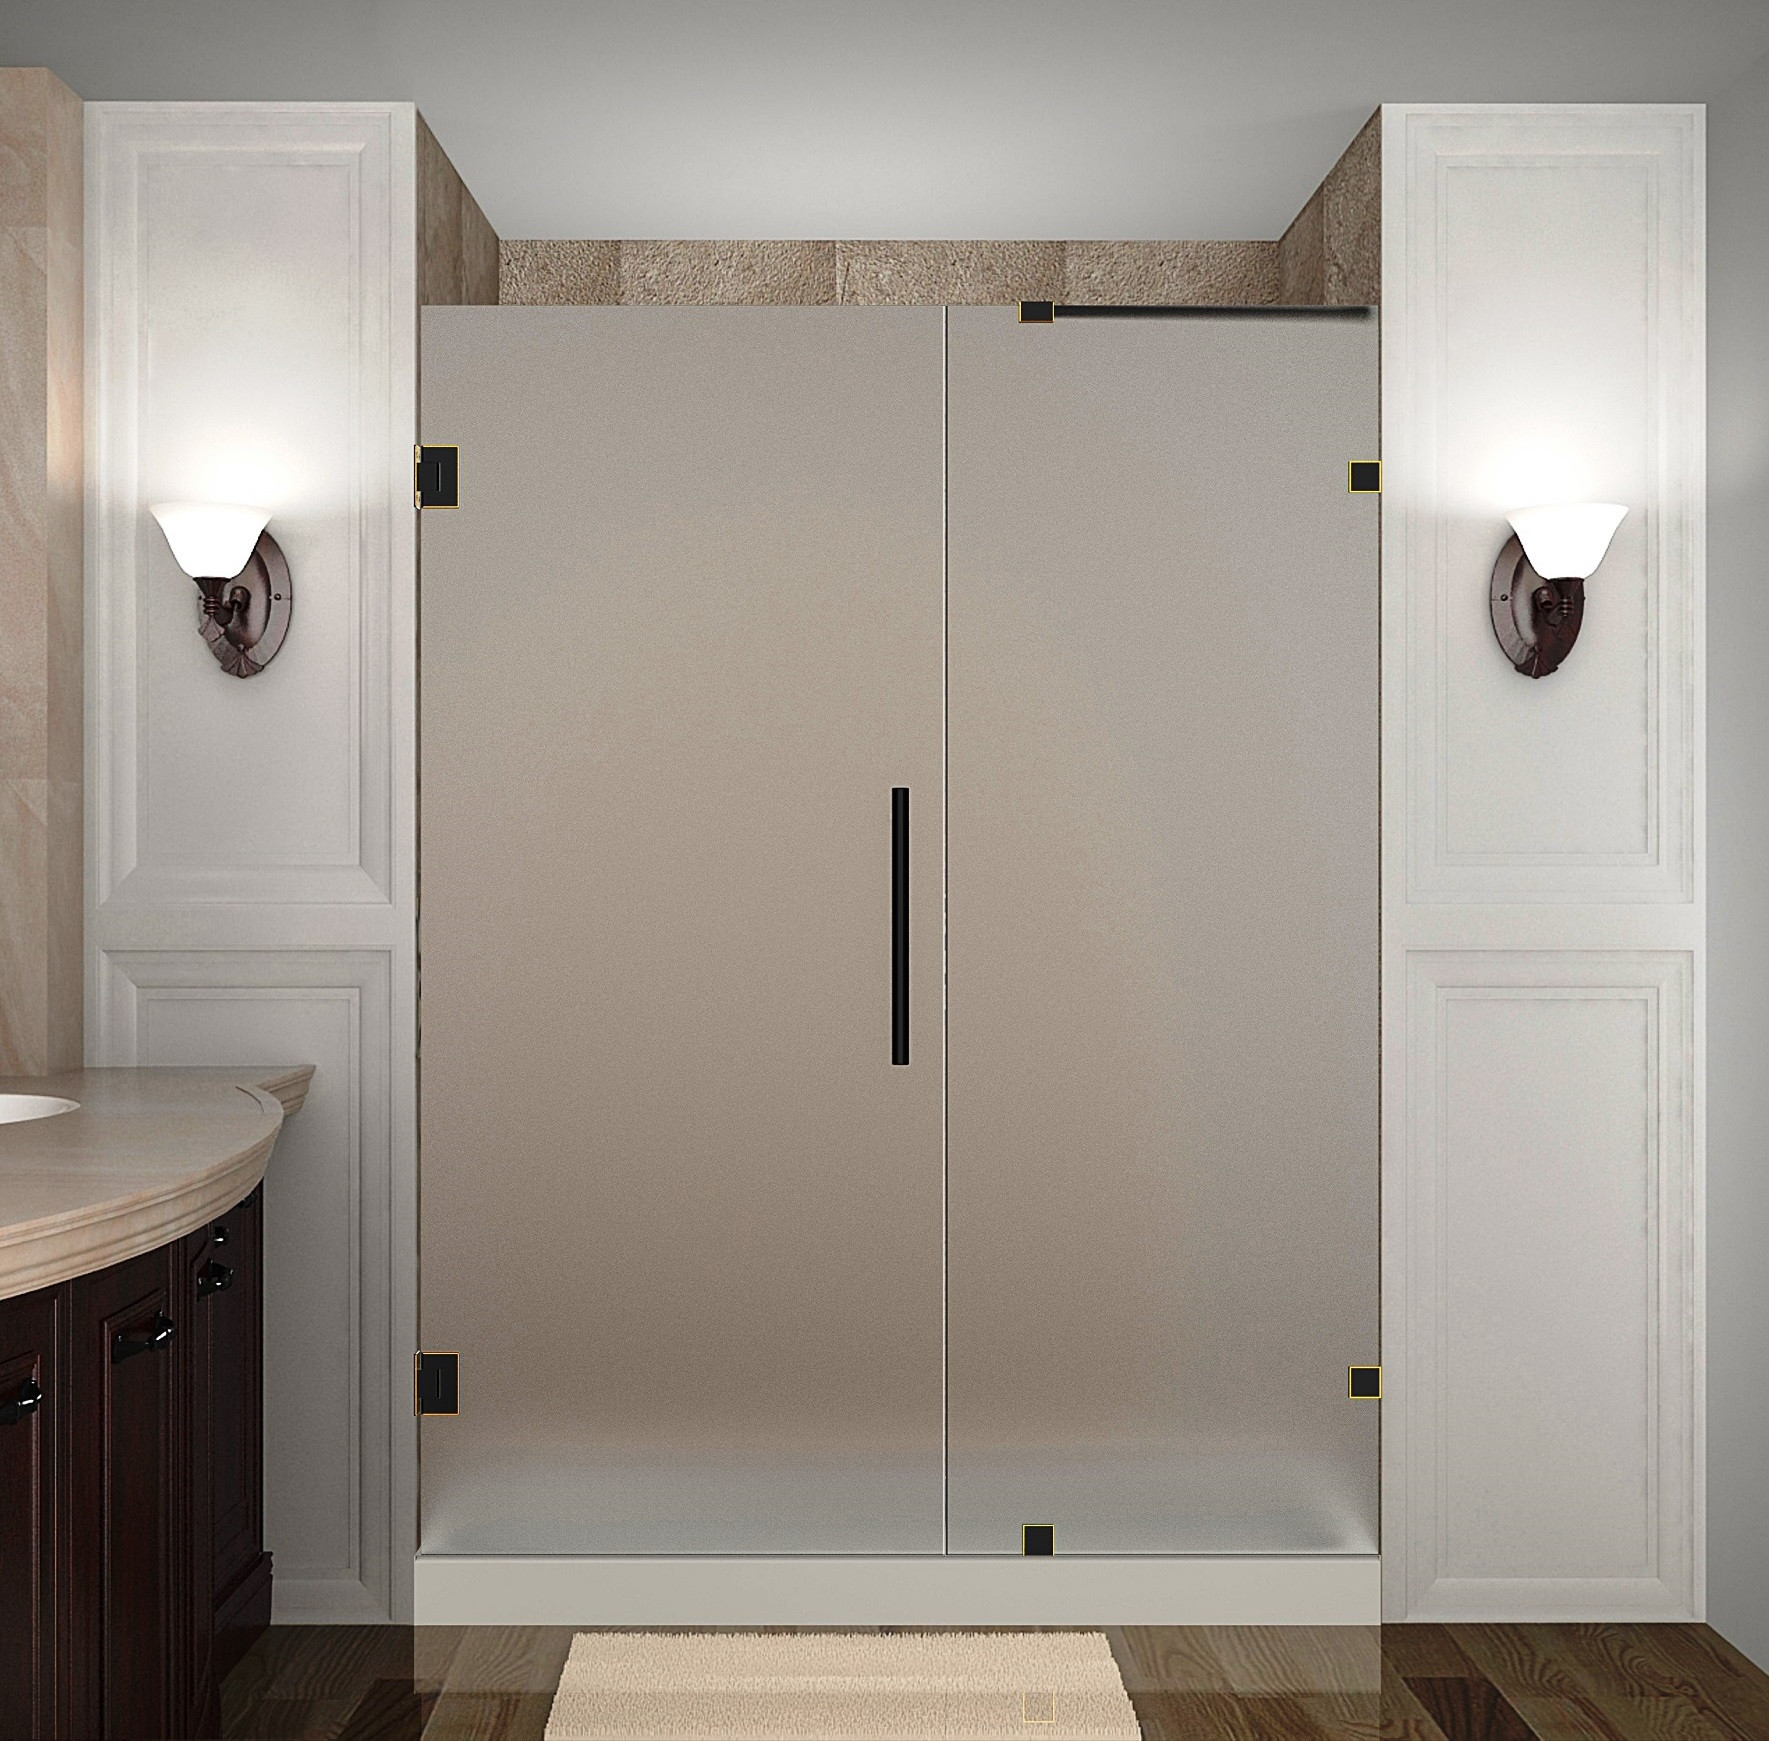 Aston Global SDR985F-ORB-63-10 Frameless Hinged Frosted Glass Shower Door In Oil Rubbed Bronze